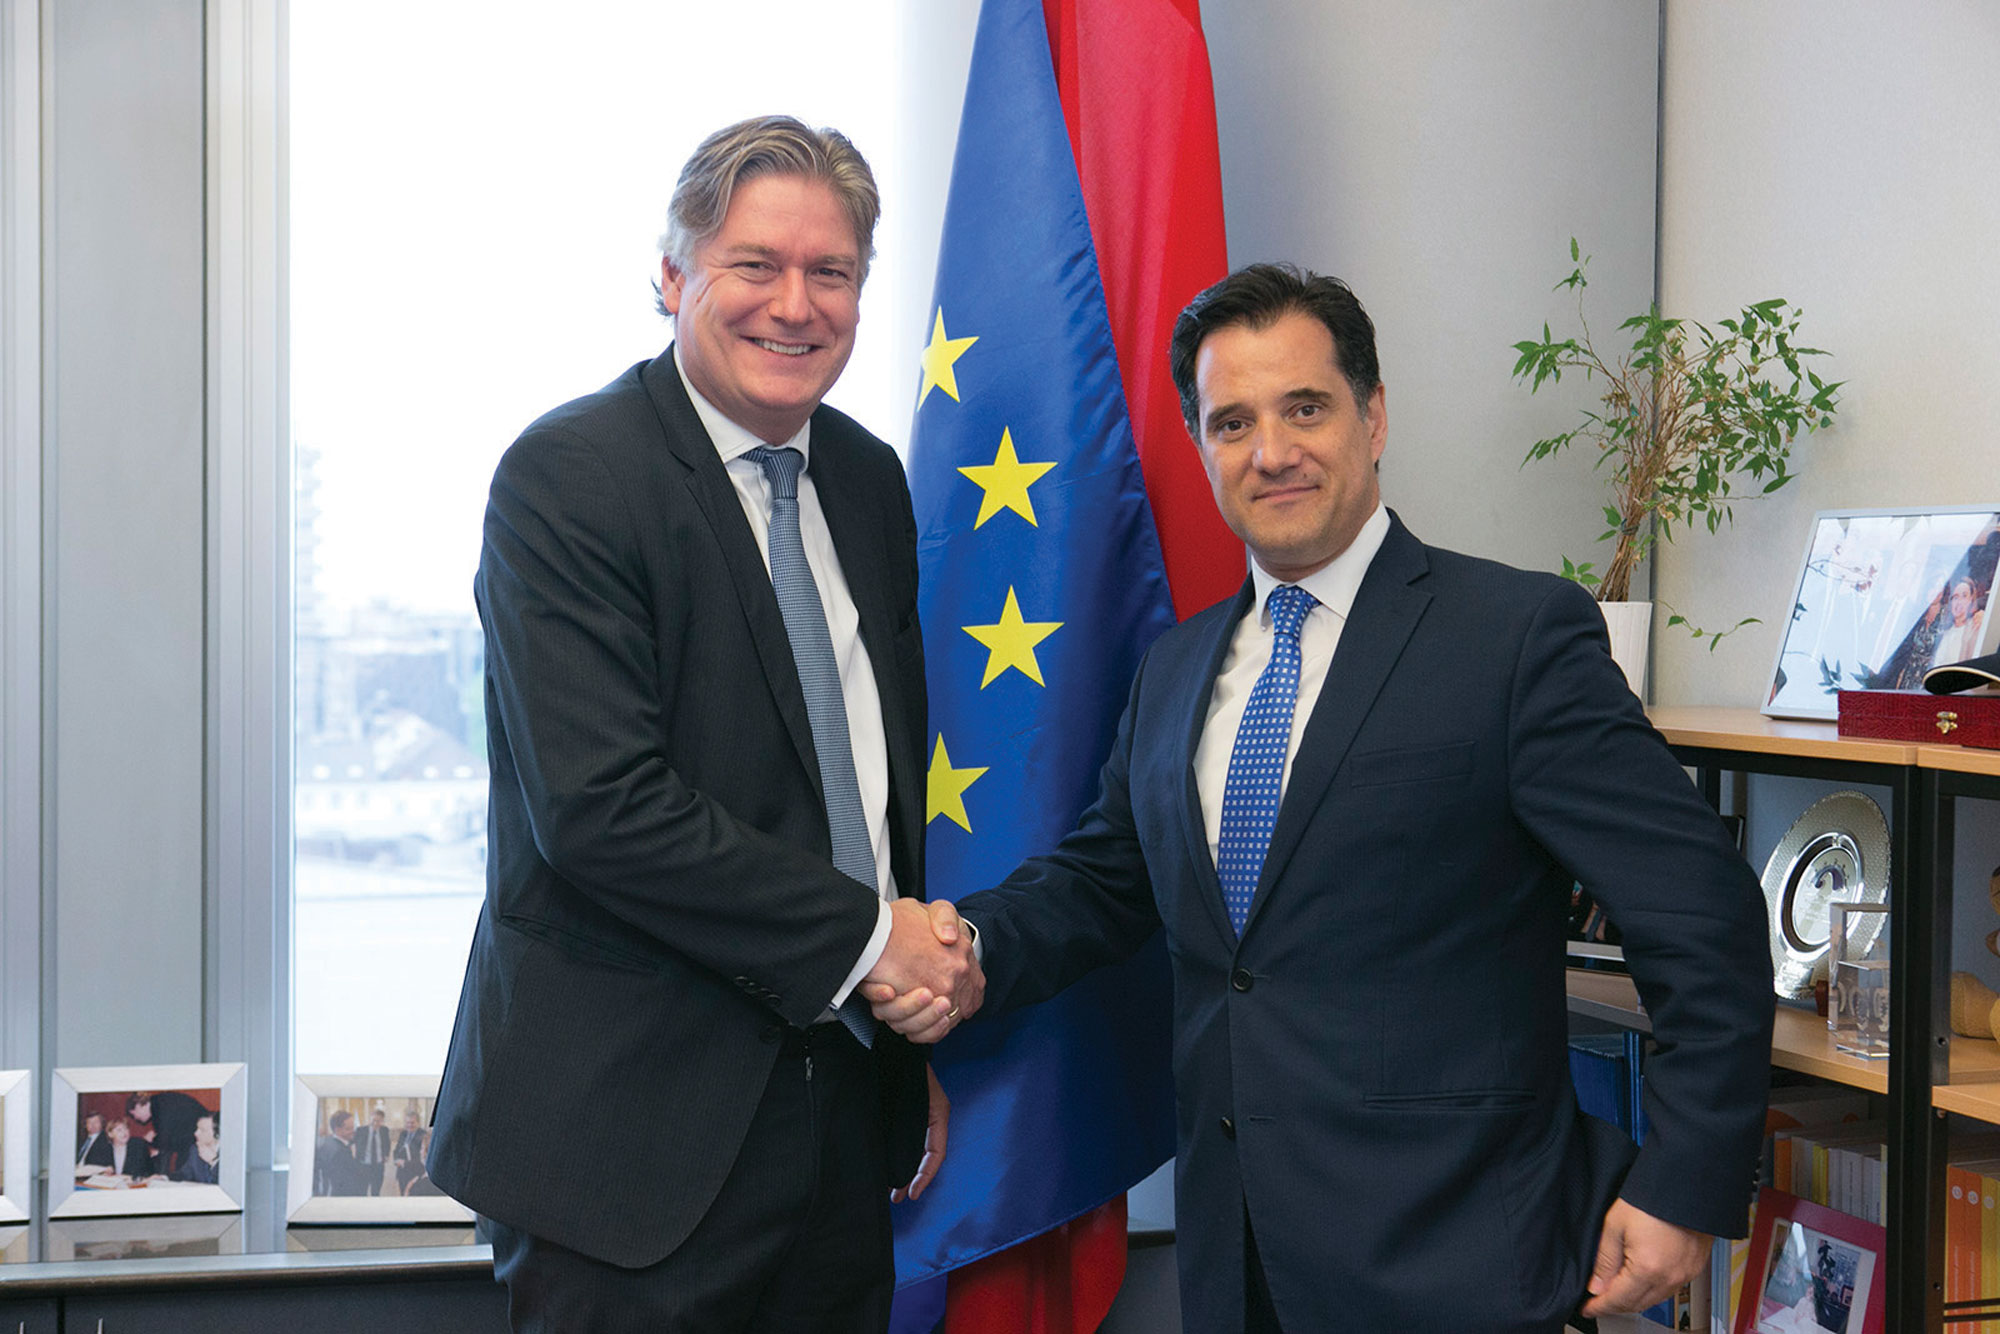 EPP Secretary General, Antonio López-Istúriz White (L) with Adonis Georgiadis